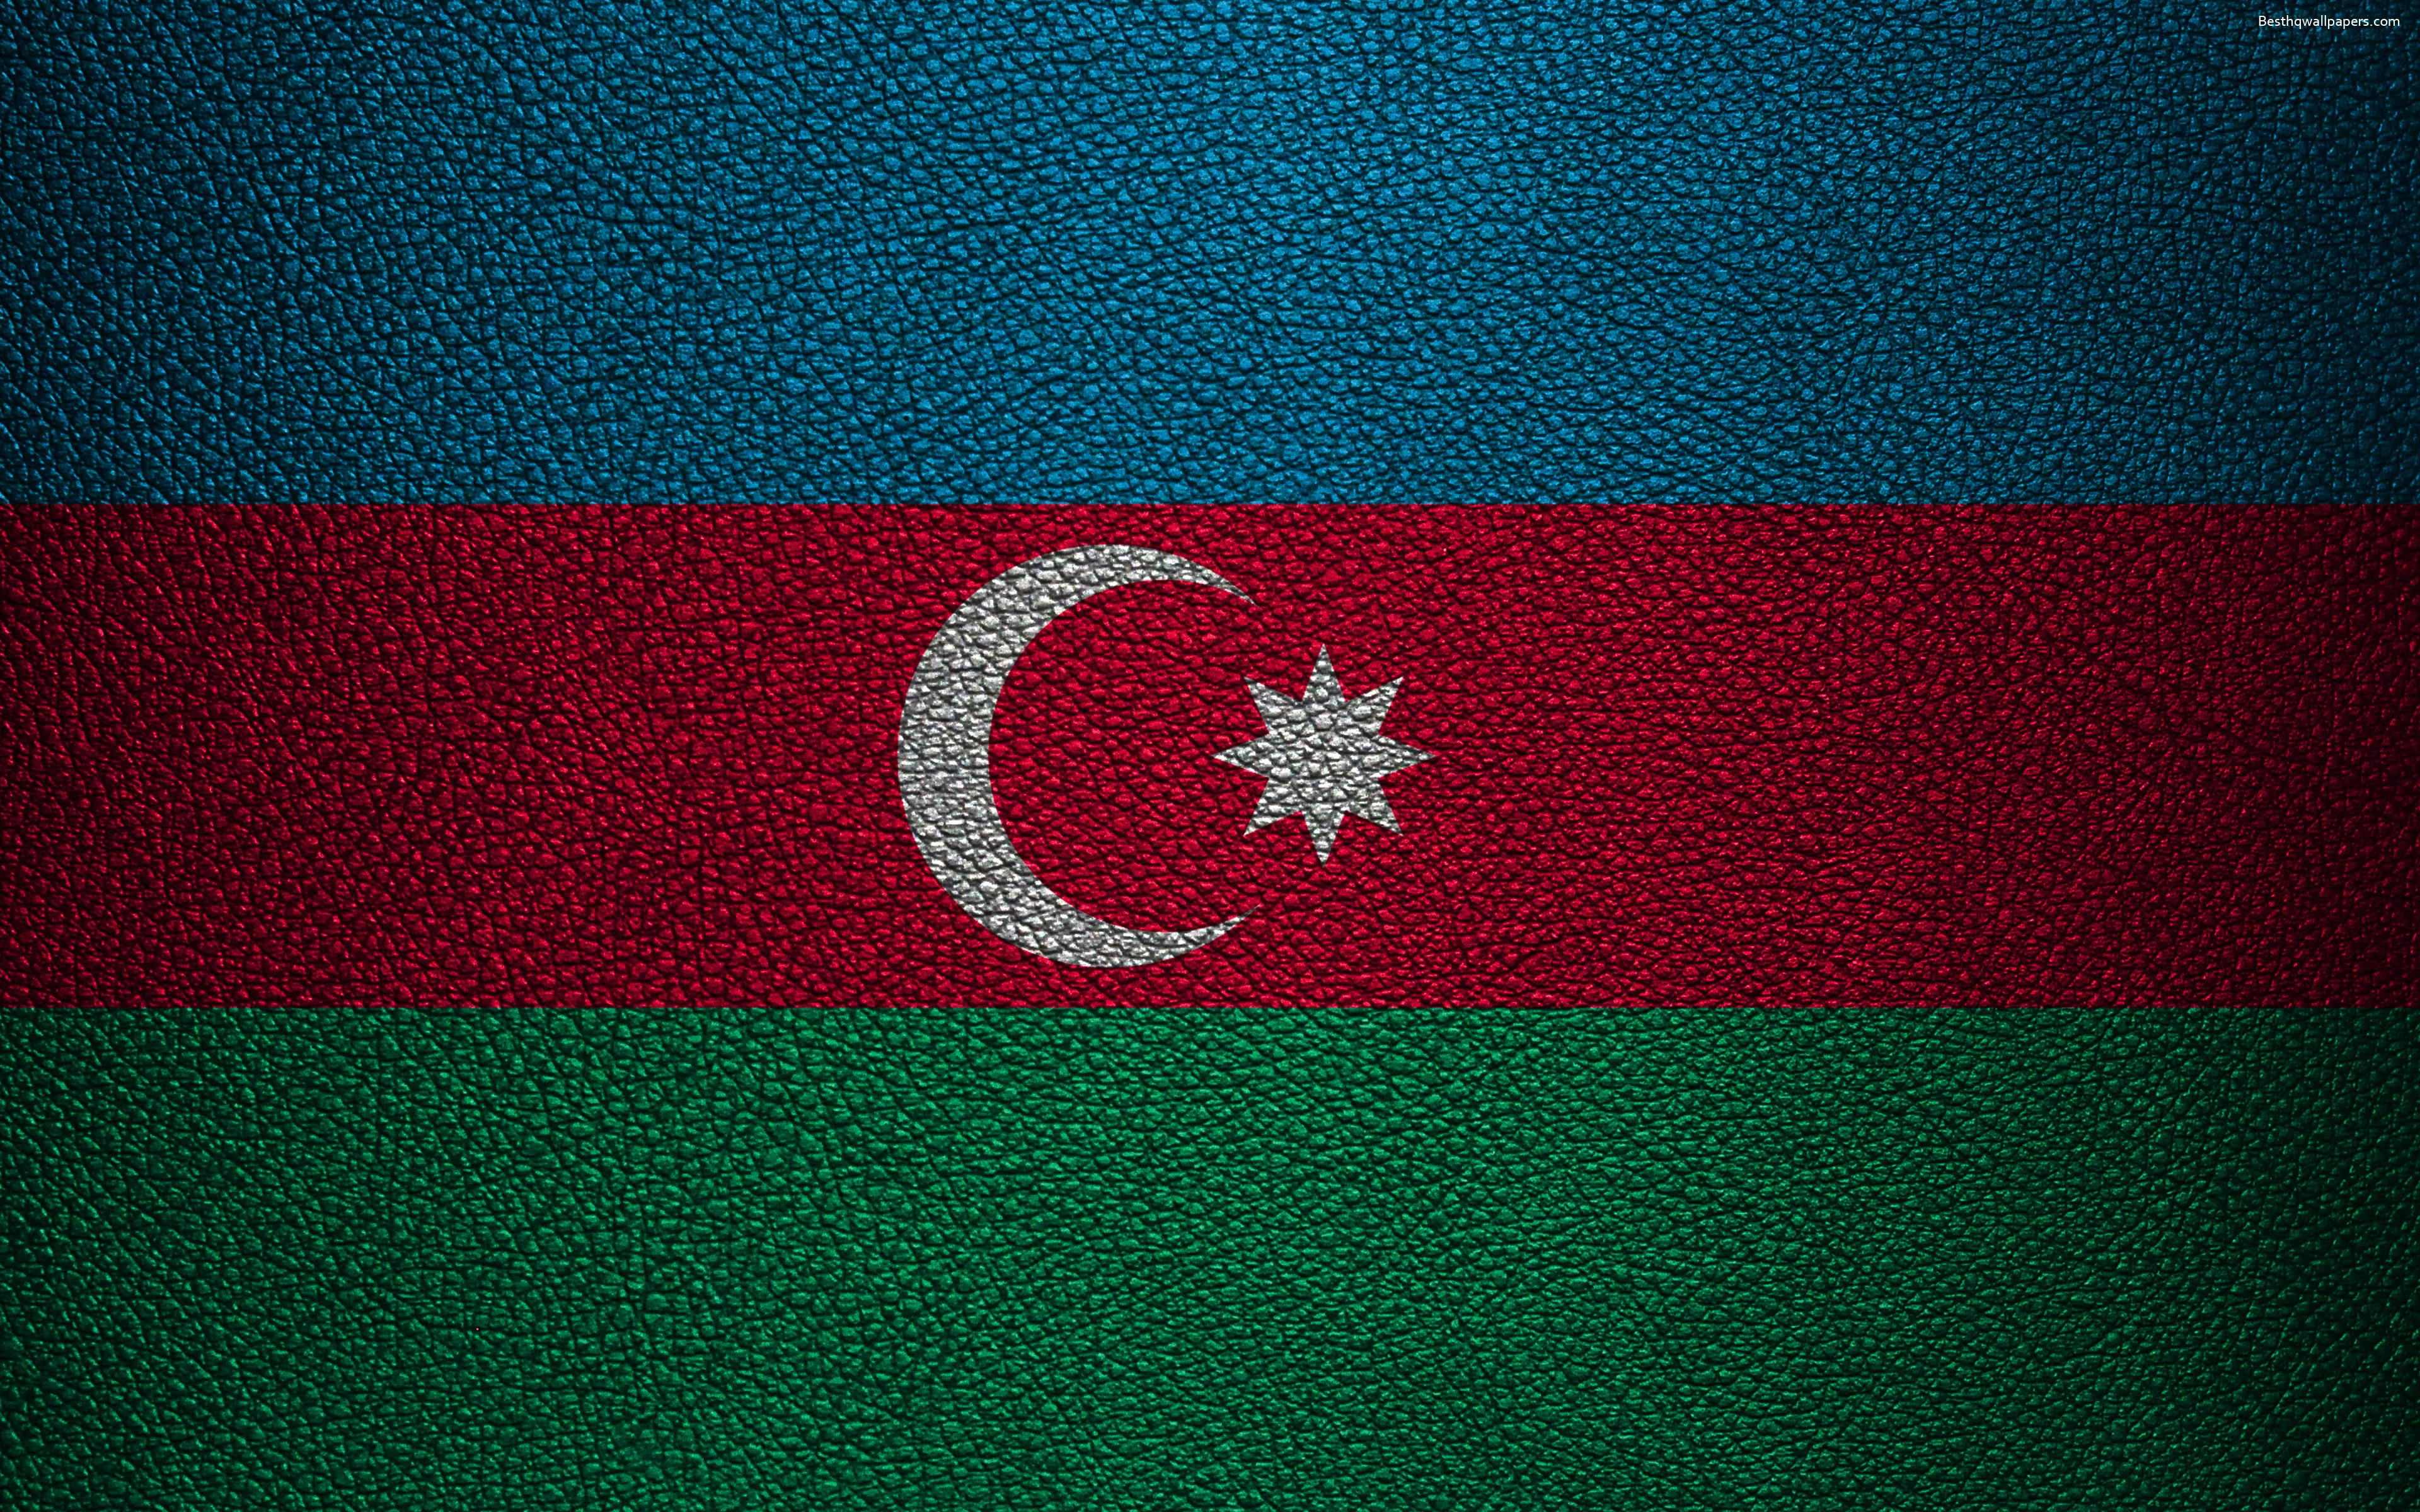 Download wallpapers Flag of Azerbaijan, 4k, leather texture ...